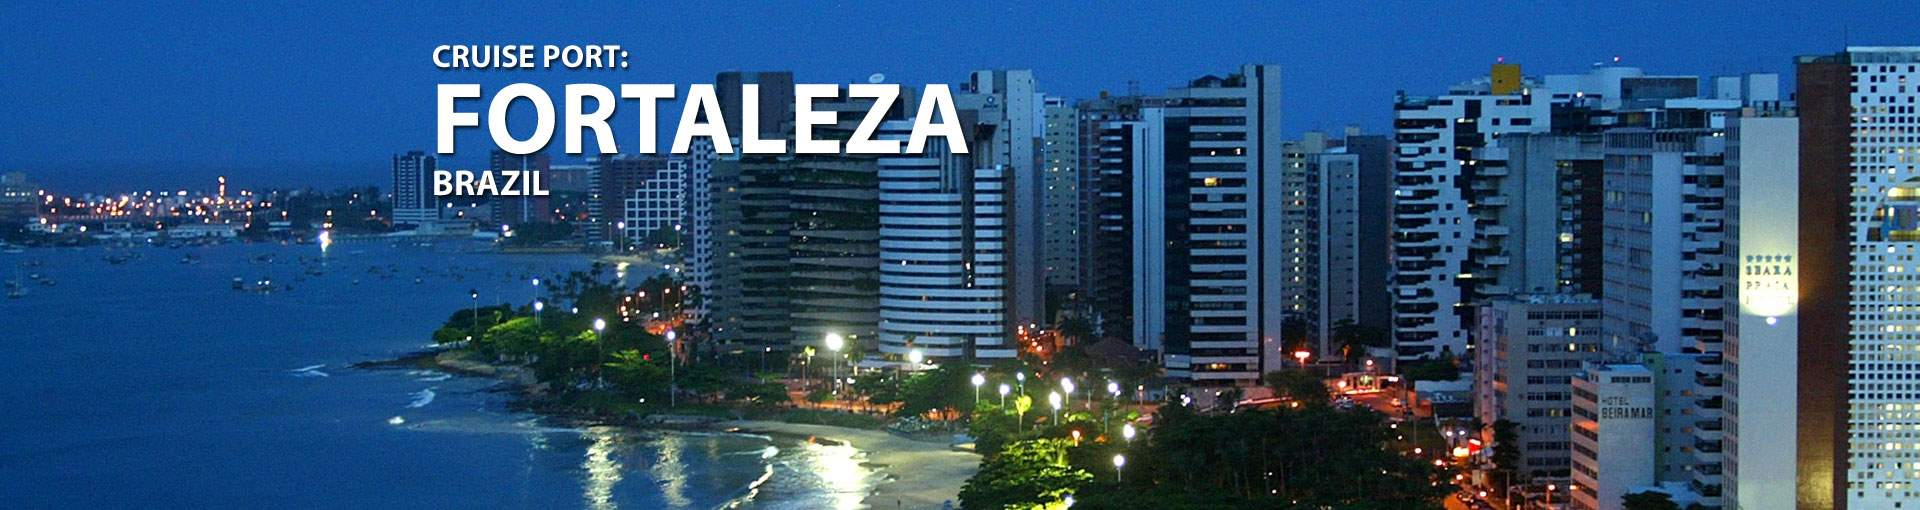 Cruises to Fortaleza, Brazil